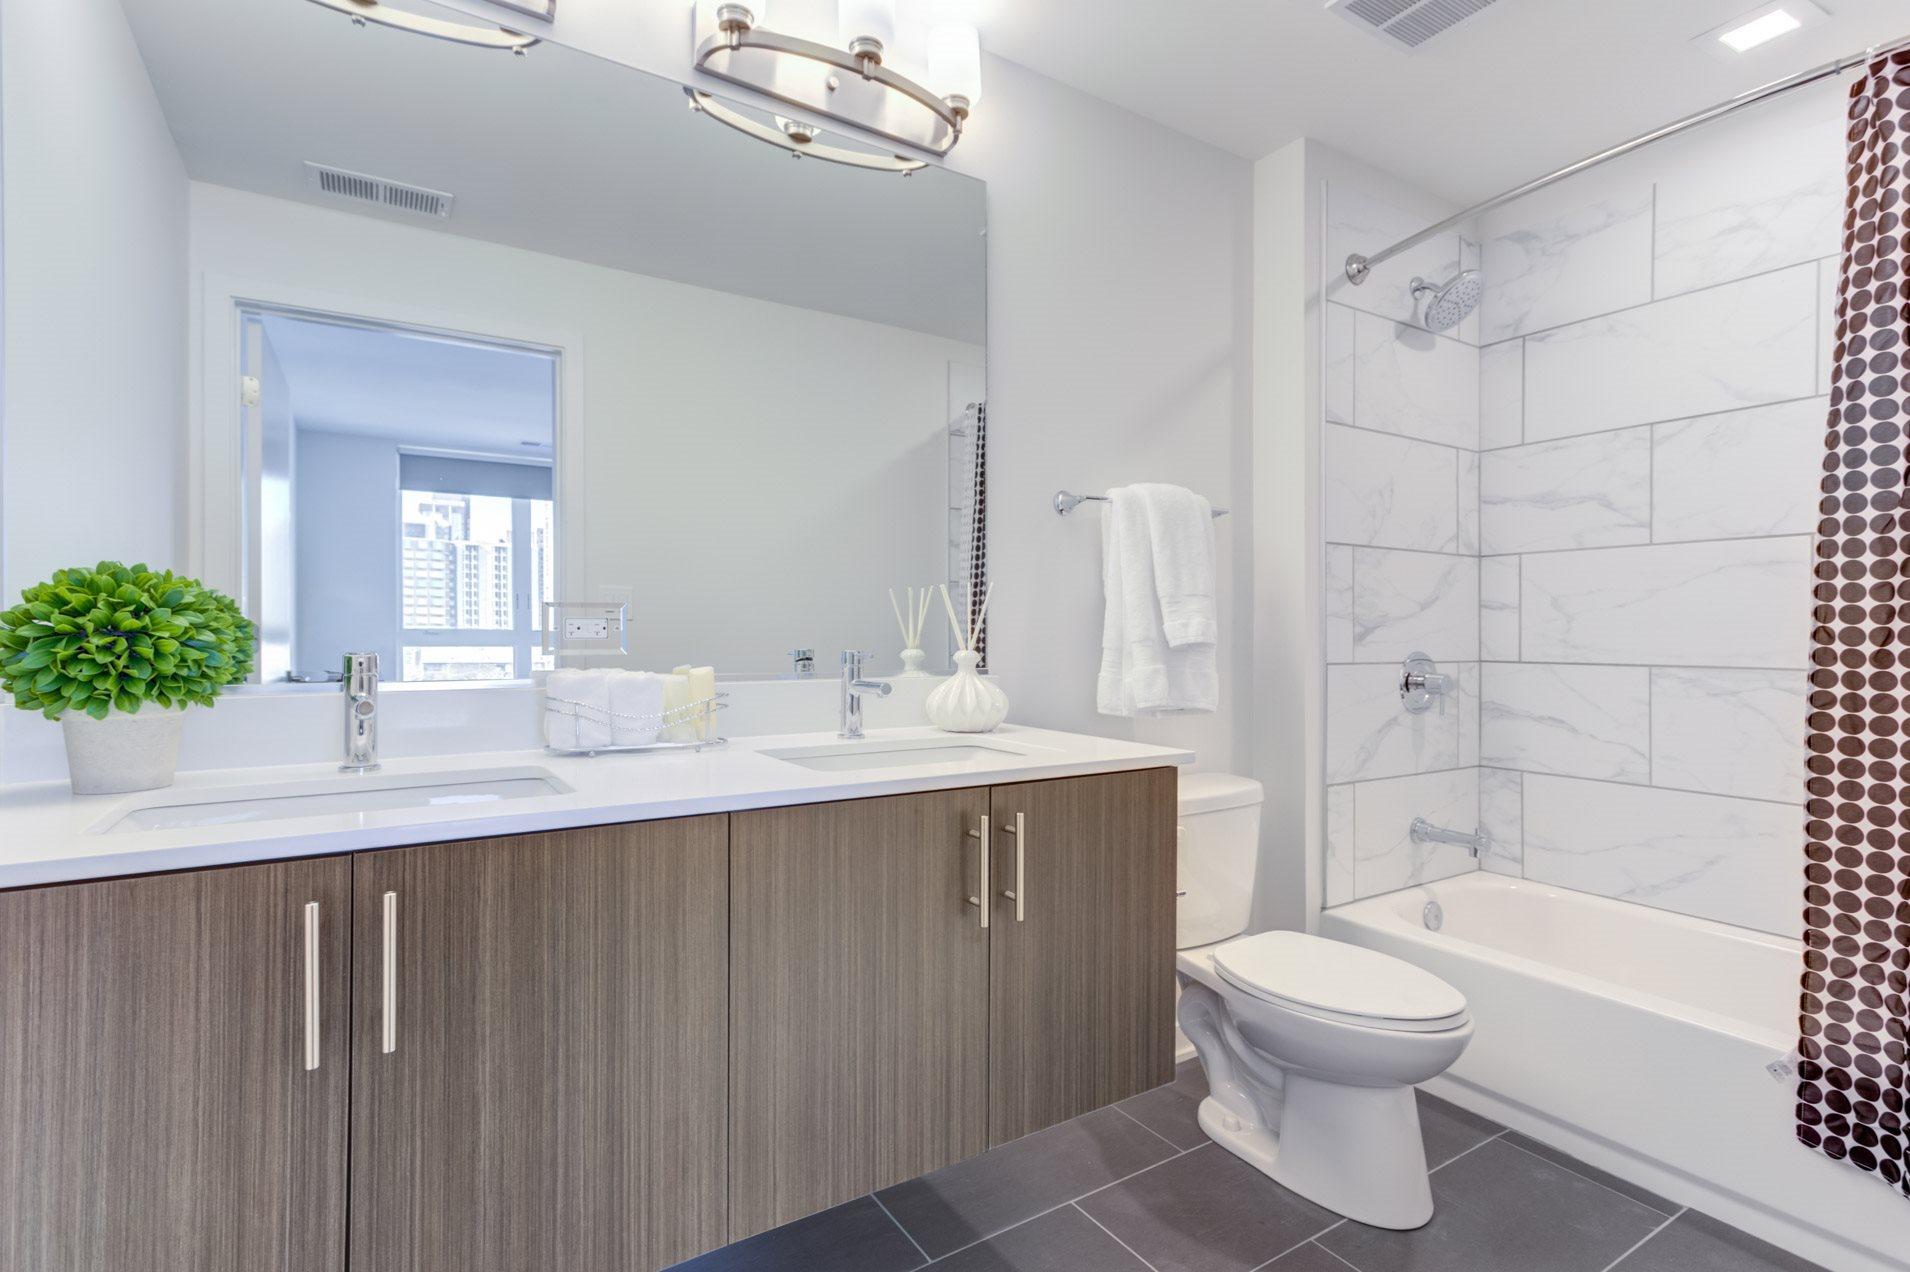 Now leasing! Looking for luxury apartments for rent near Old Town Chicago? Wells Street Pet Friendly Apartments available now